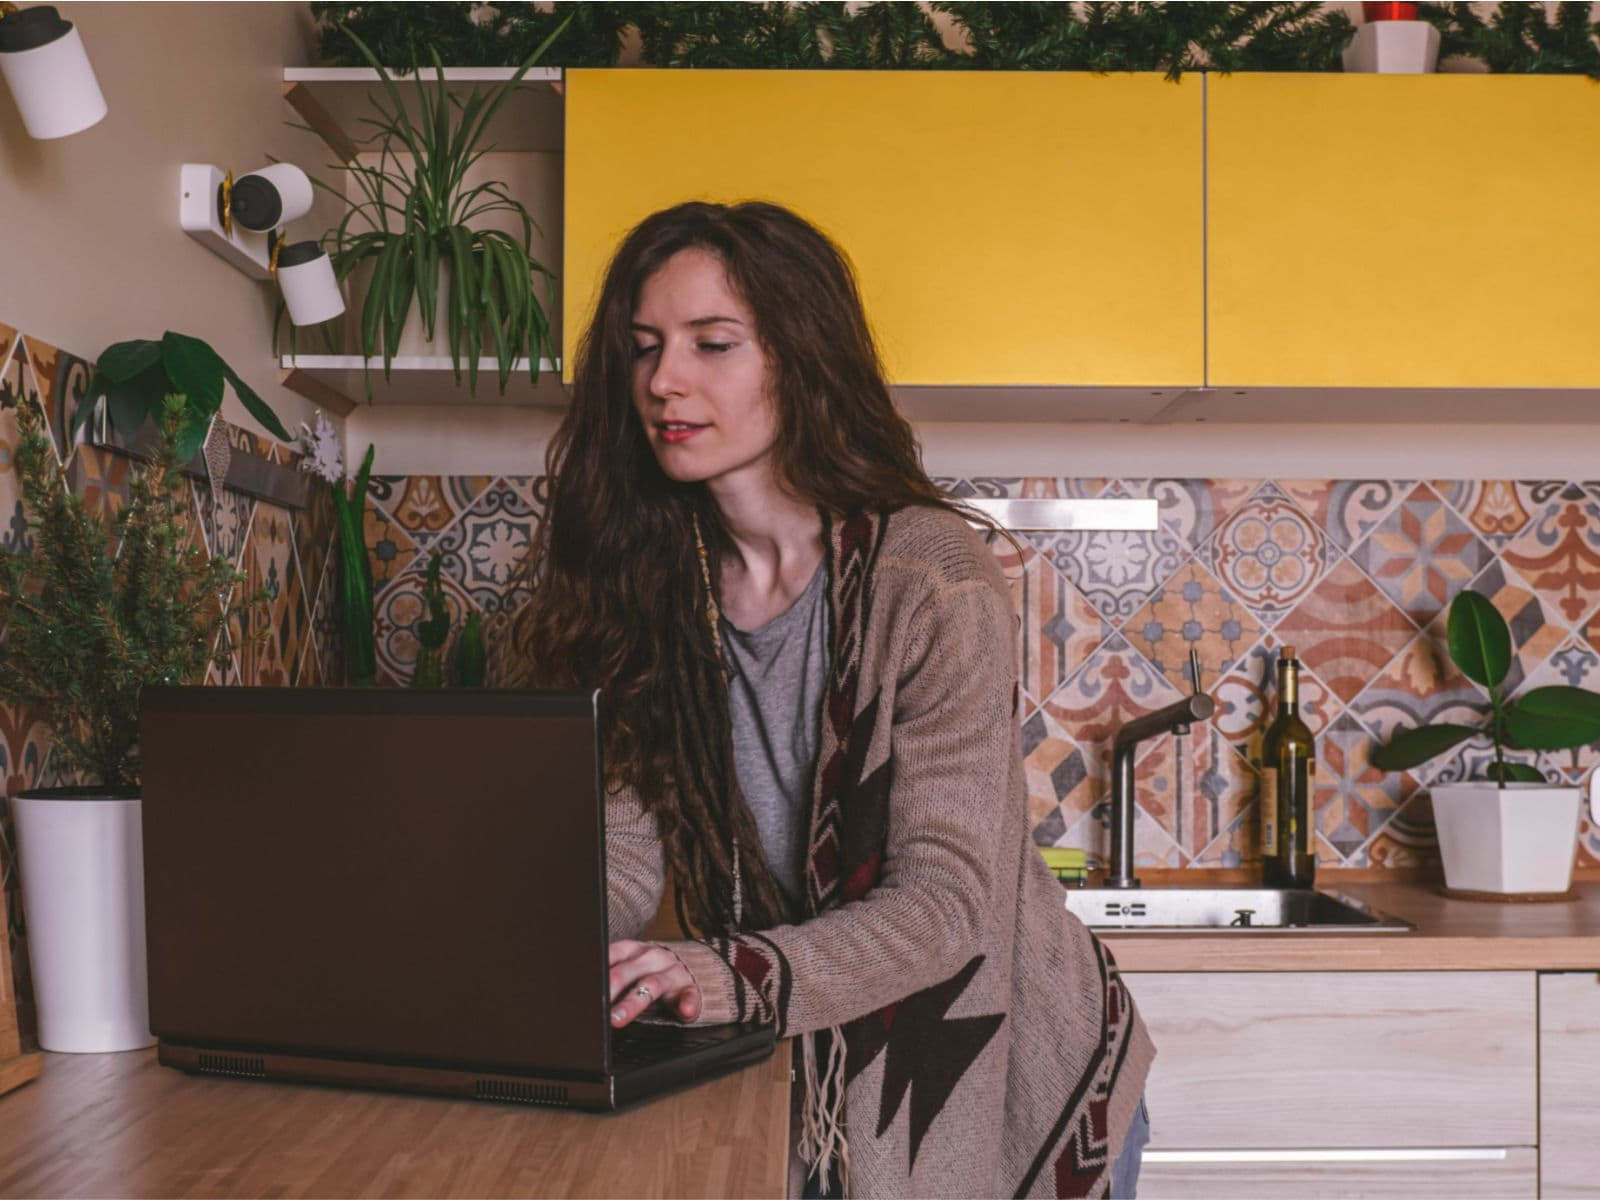 college woman looking thoughtful while using the internet on her laptop in the kitchen